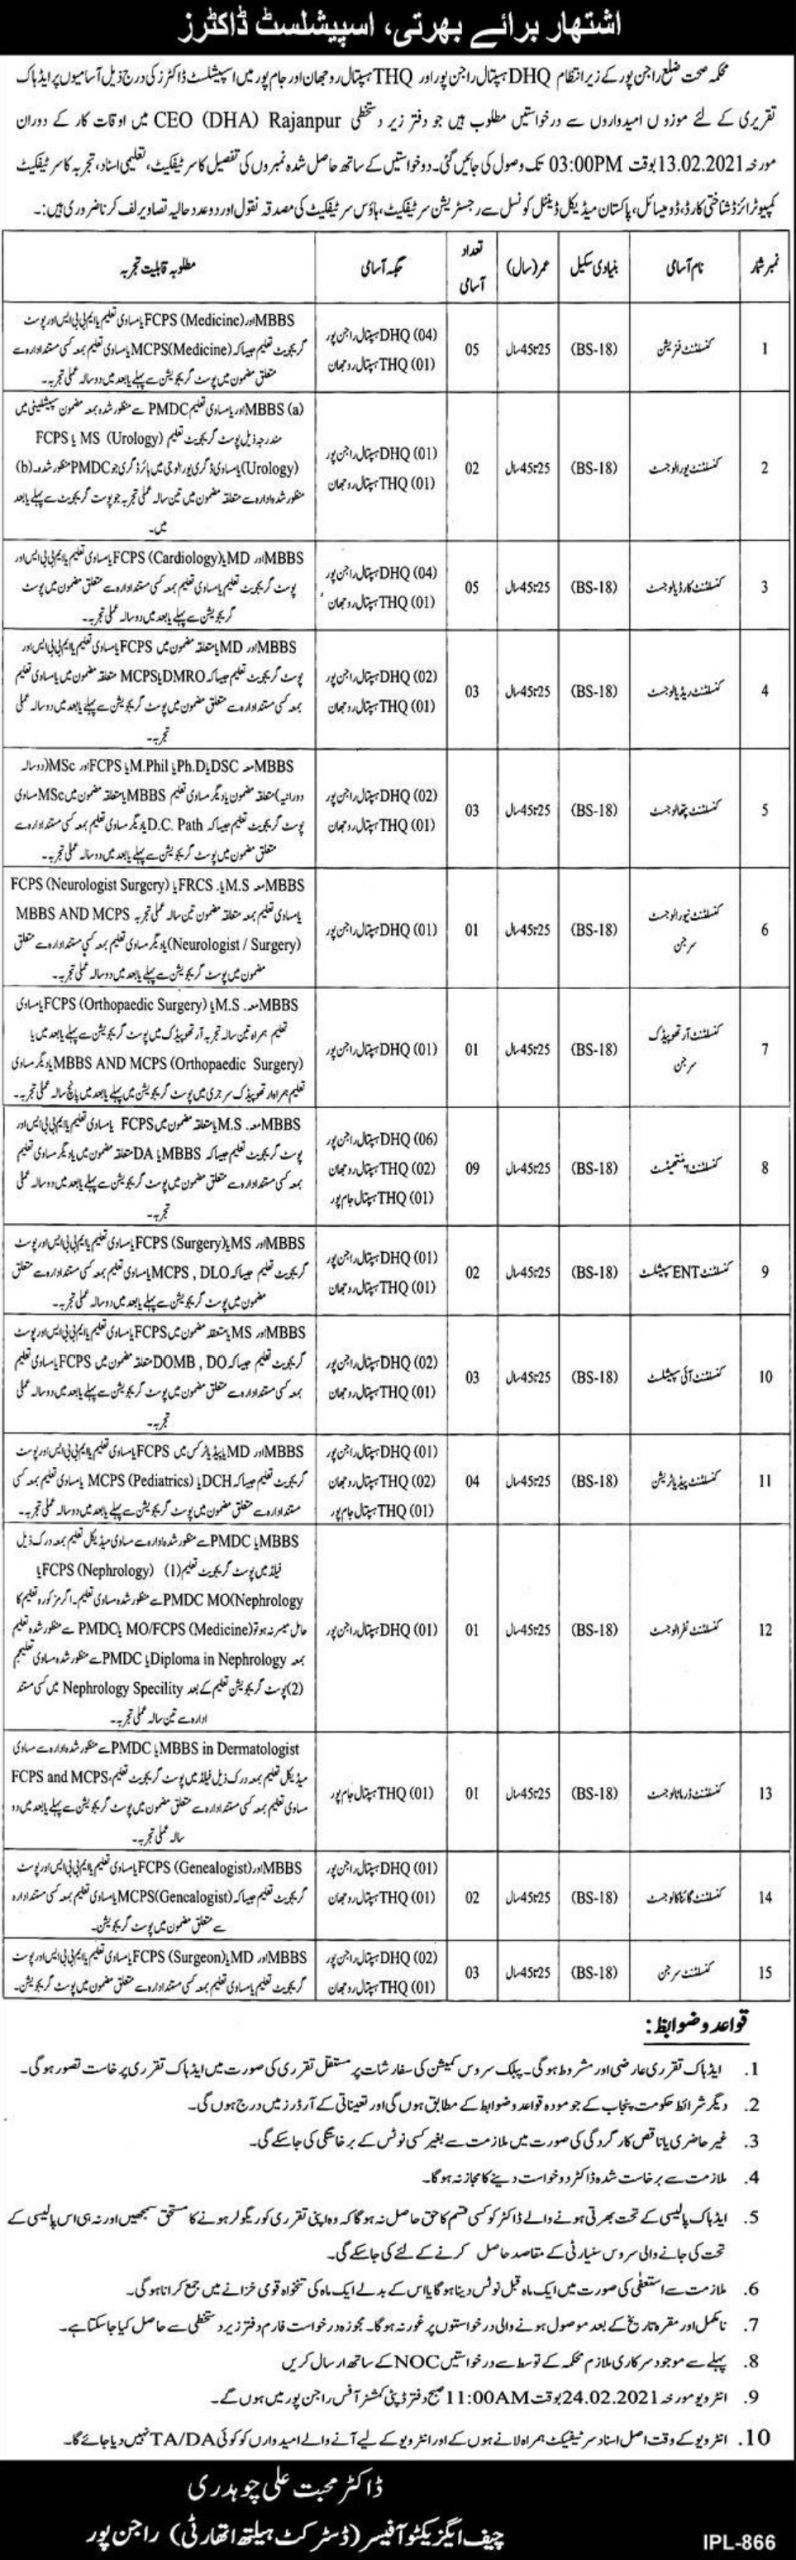 Punjab Health Department Rajanpur Jobs January 2021